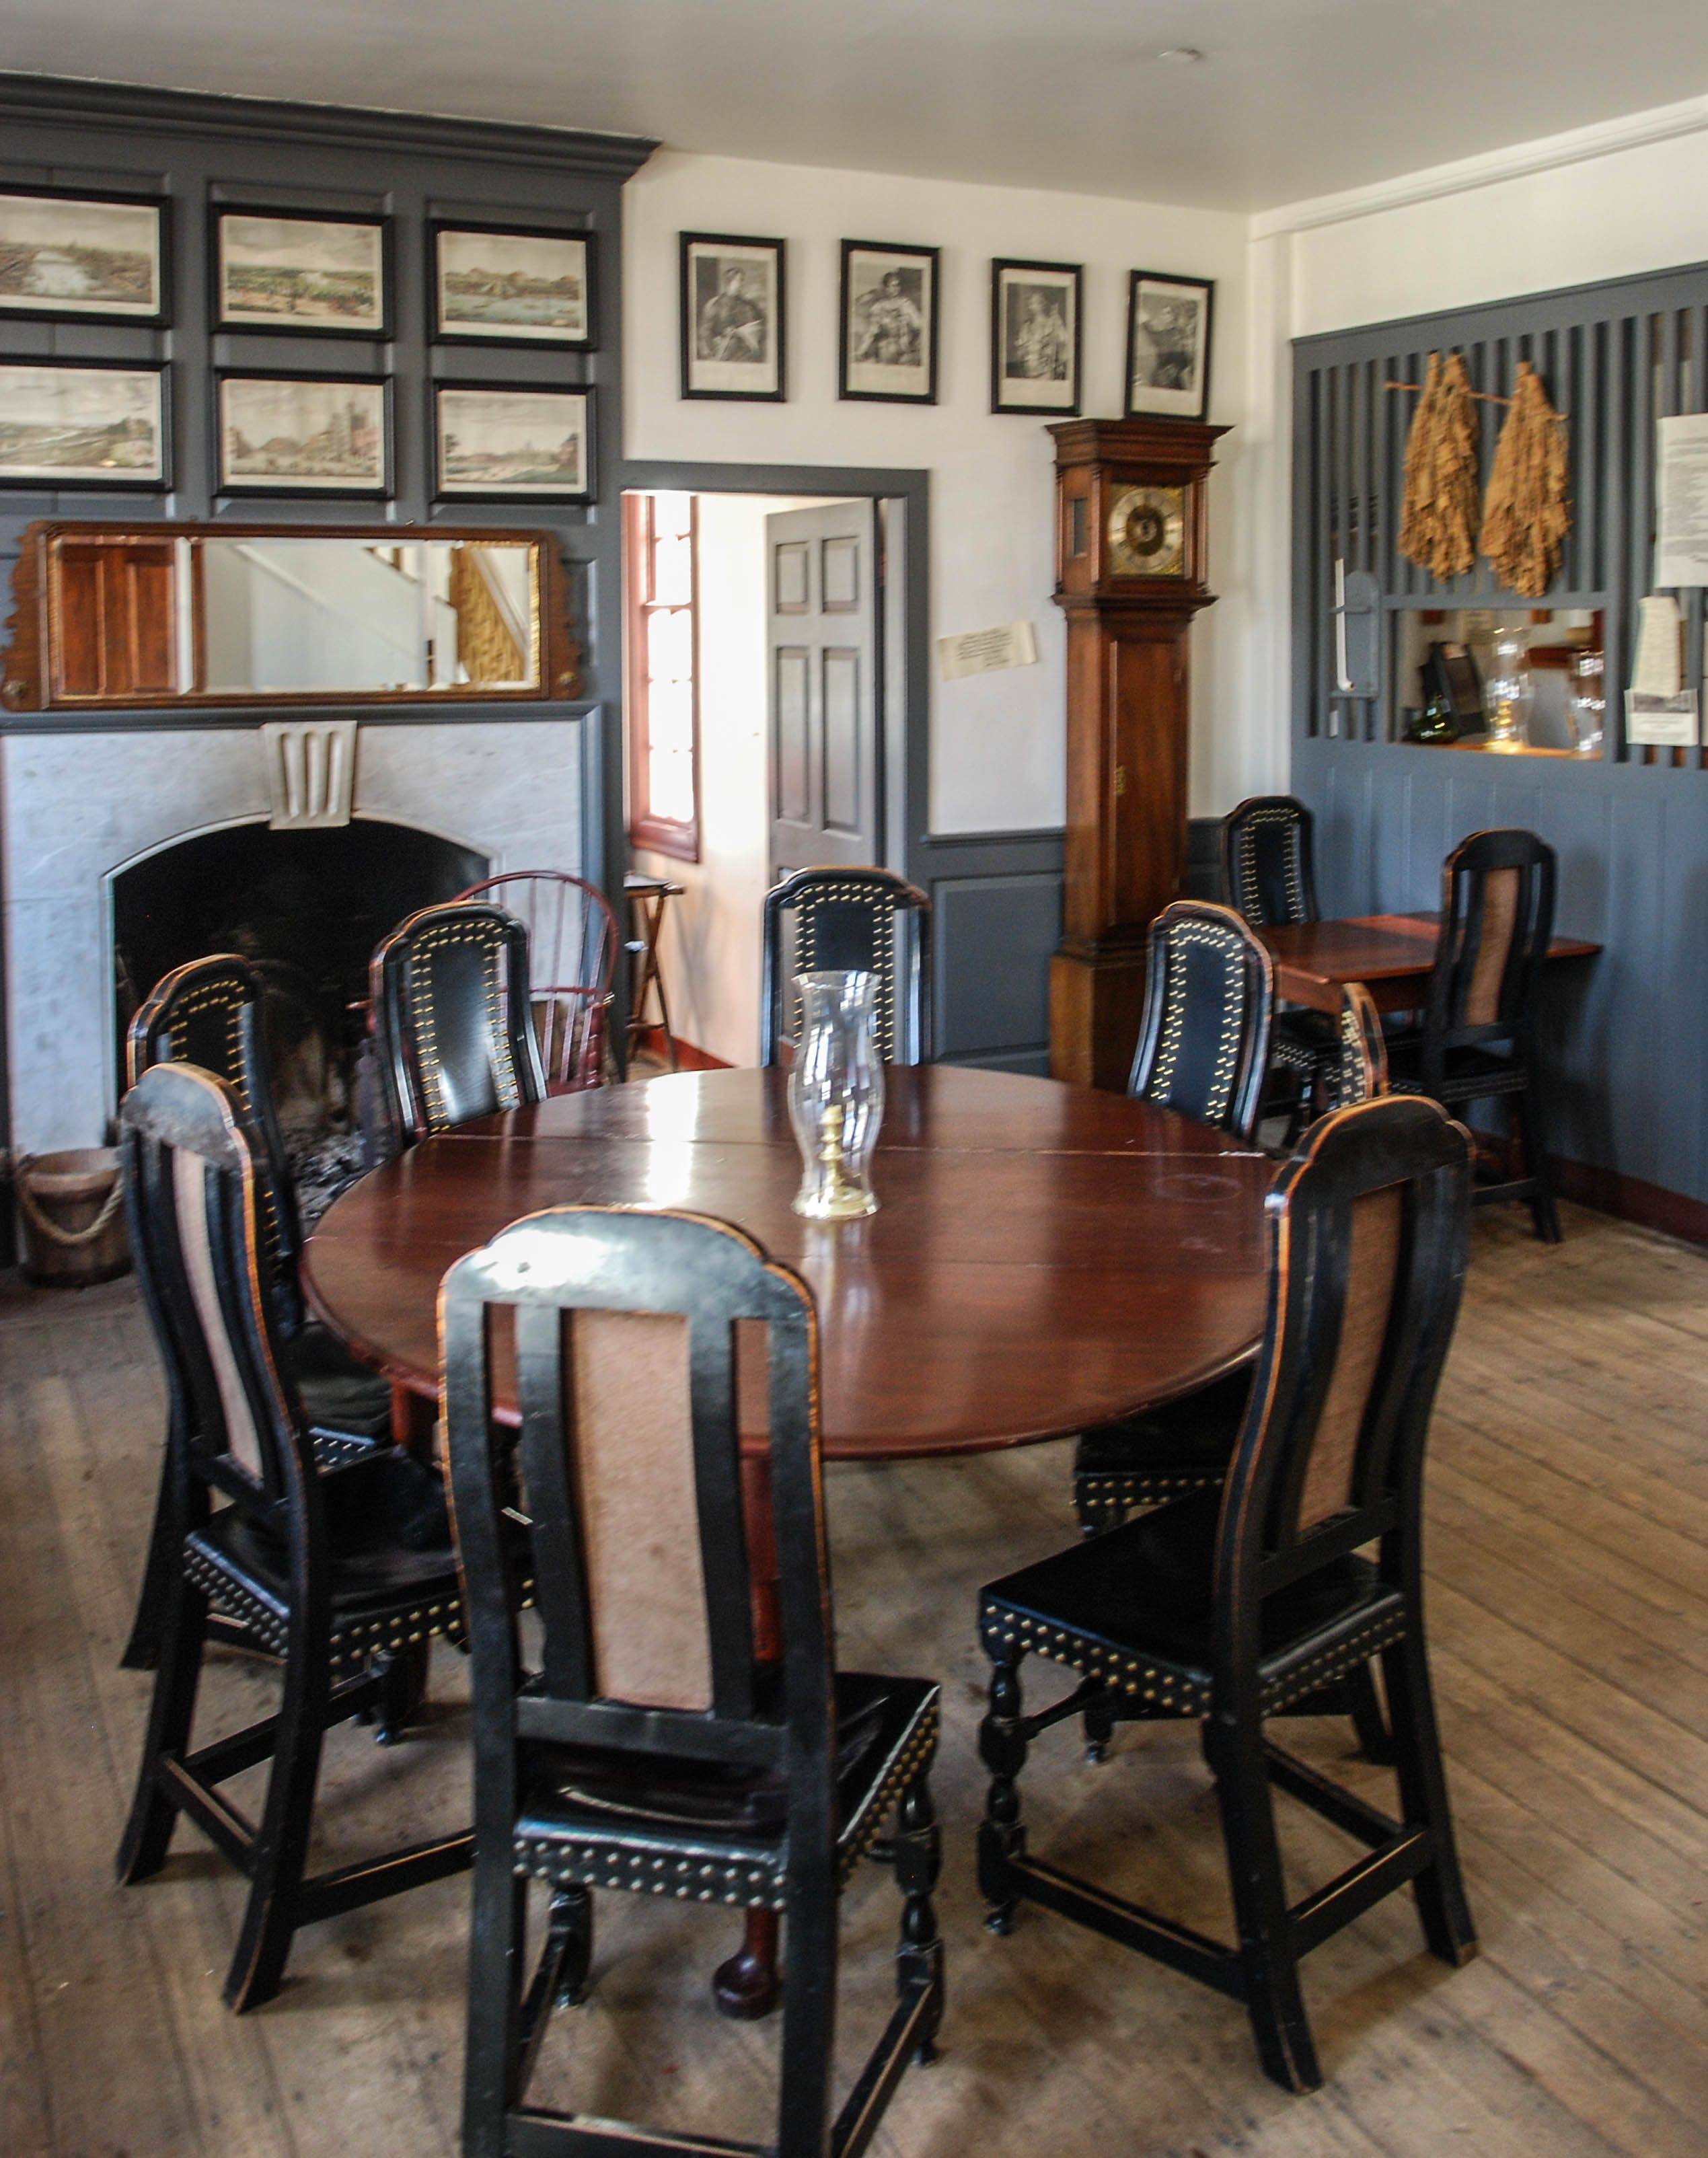 Colonial Williamsburg Virginia Photo By Mike Keenan Read Articles At Www Whattravelwiterssay Com Colonial House Interior